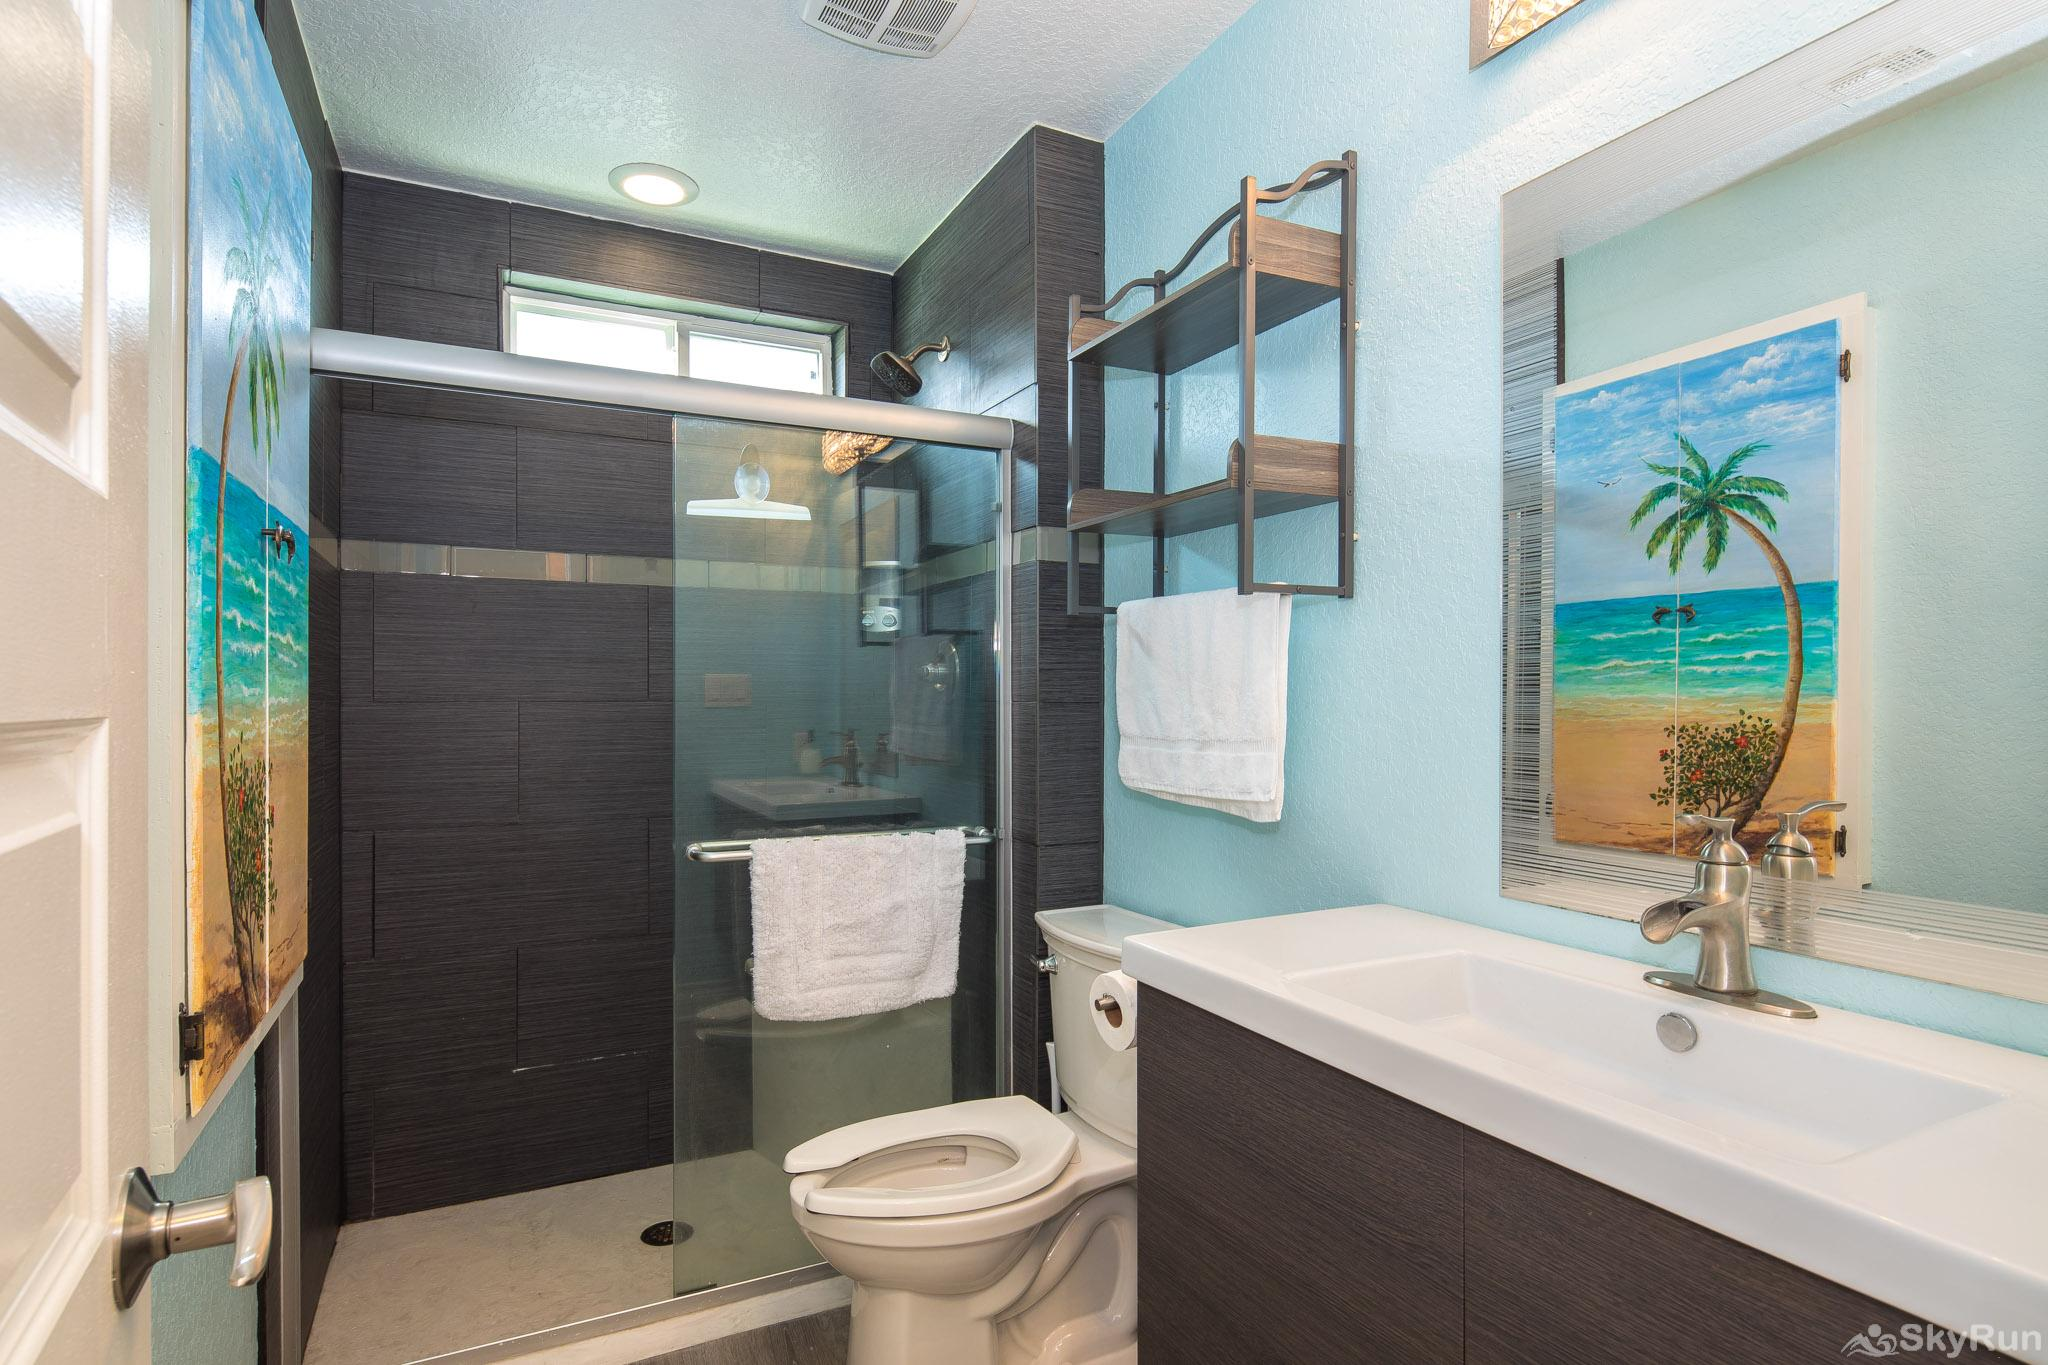 LEDGEROCK POINTE Beautiful bathroom with sleek tiled, walk-in shower